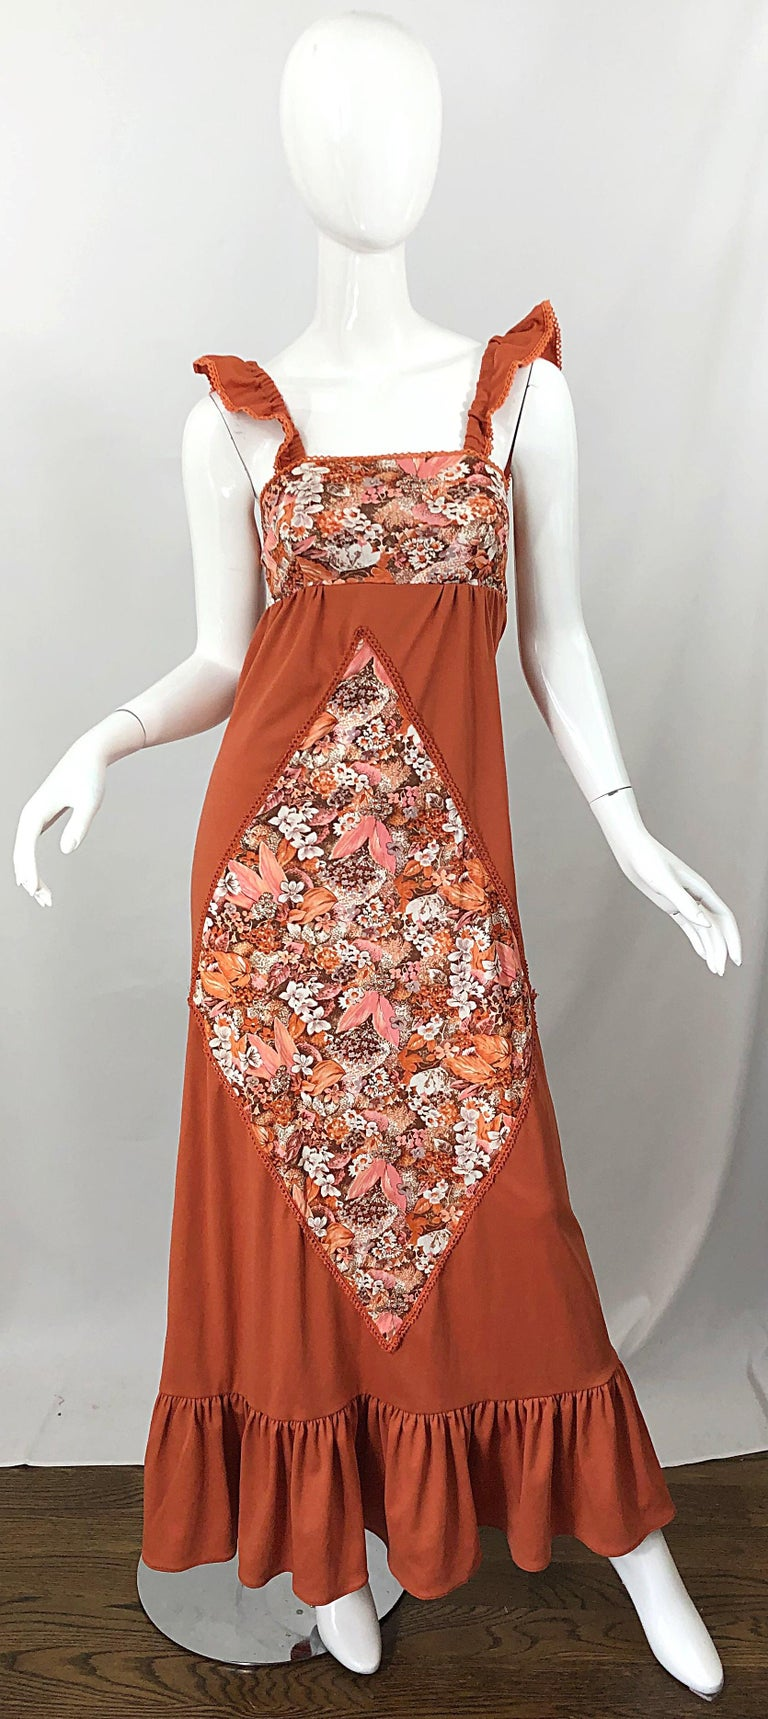 Amazing 1970s burnt orange patchwork flowers and leaves jersey maxi dress! Features a rich autumn burnt orange base color. Diamond shaped patchwork on the front with flowers and leaves printed in warm hues of pink, ivory, brown and orange. Same